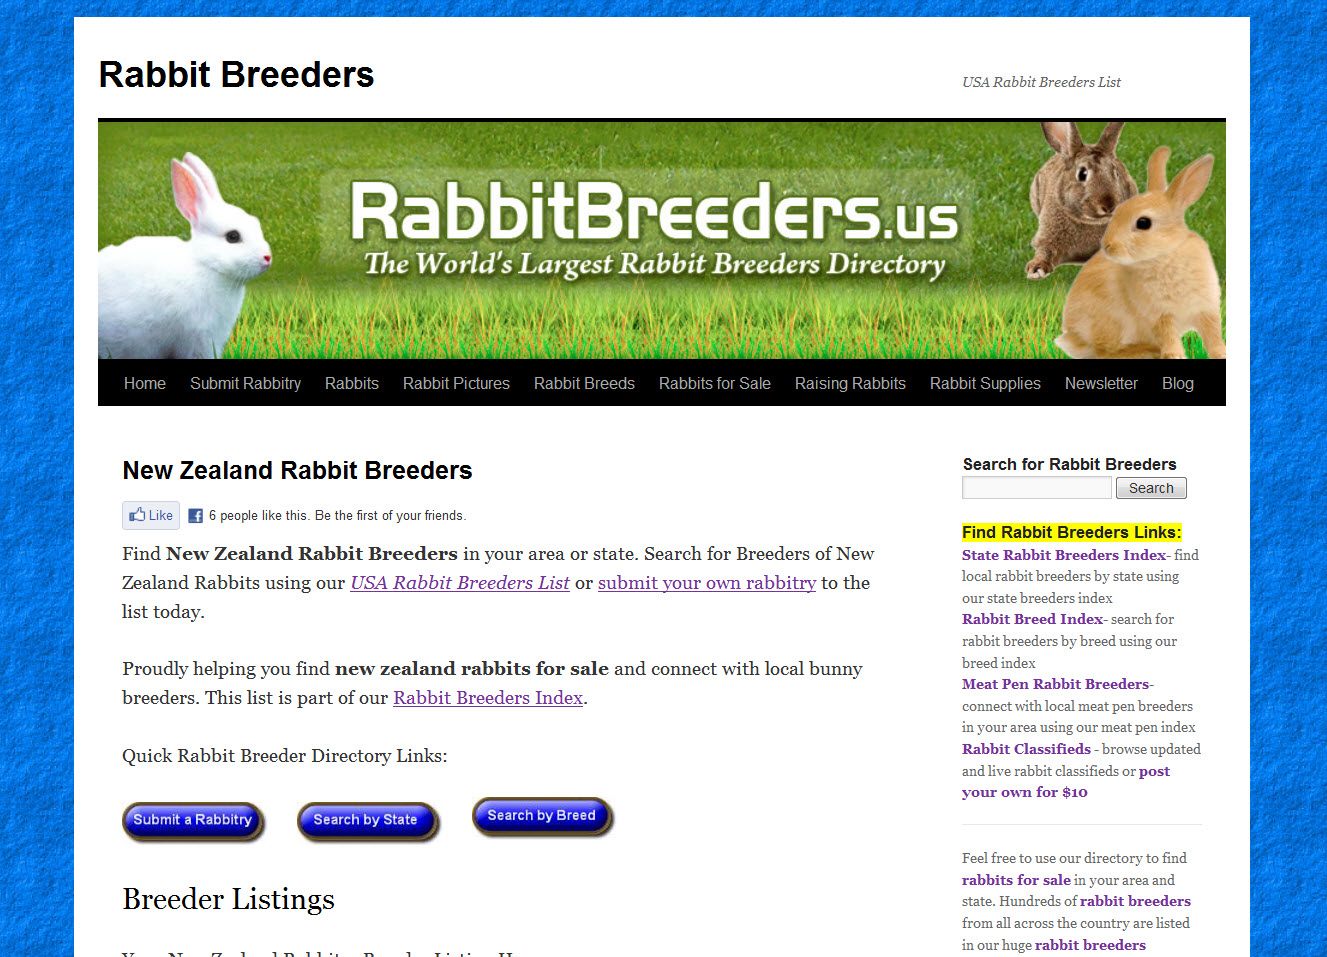 New Zealand Rabbit Breeders